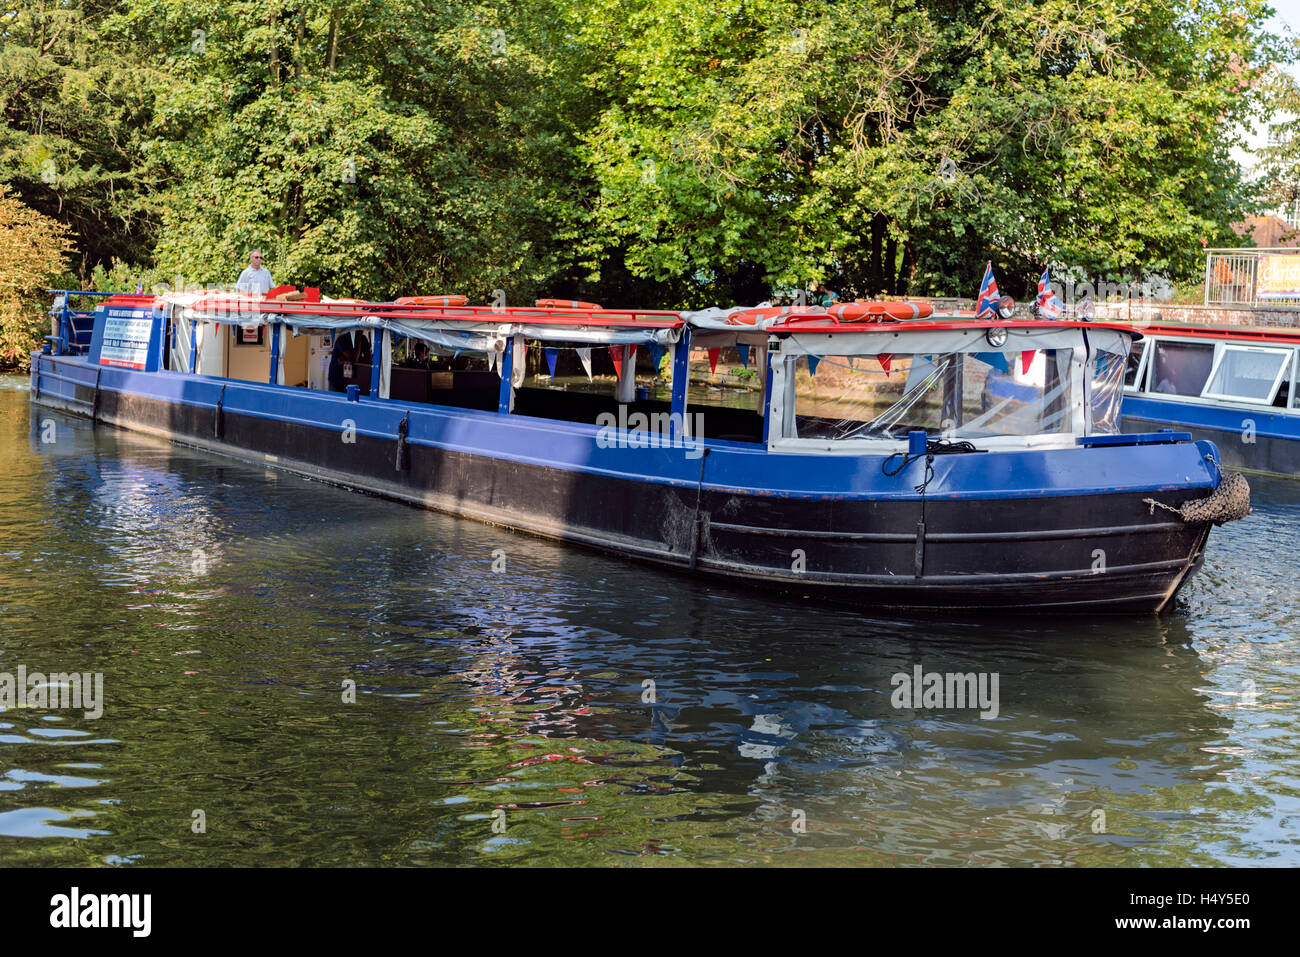 A longboat on the River Lee, Ware, Hertfordshire - Stock Image